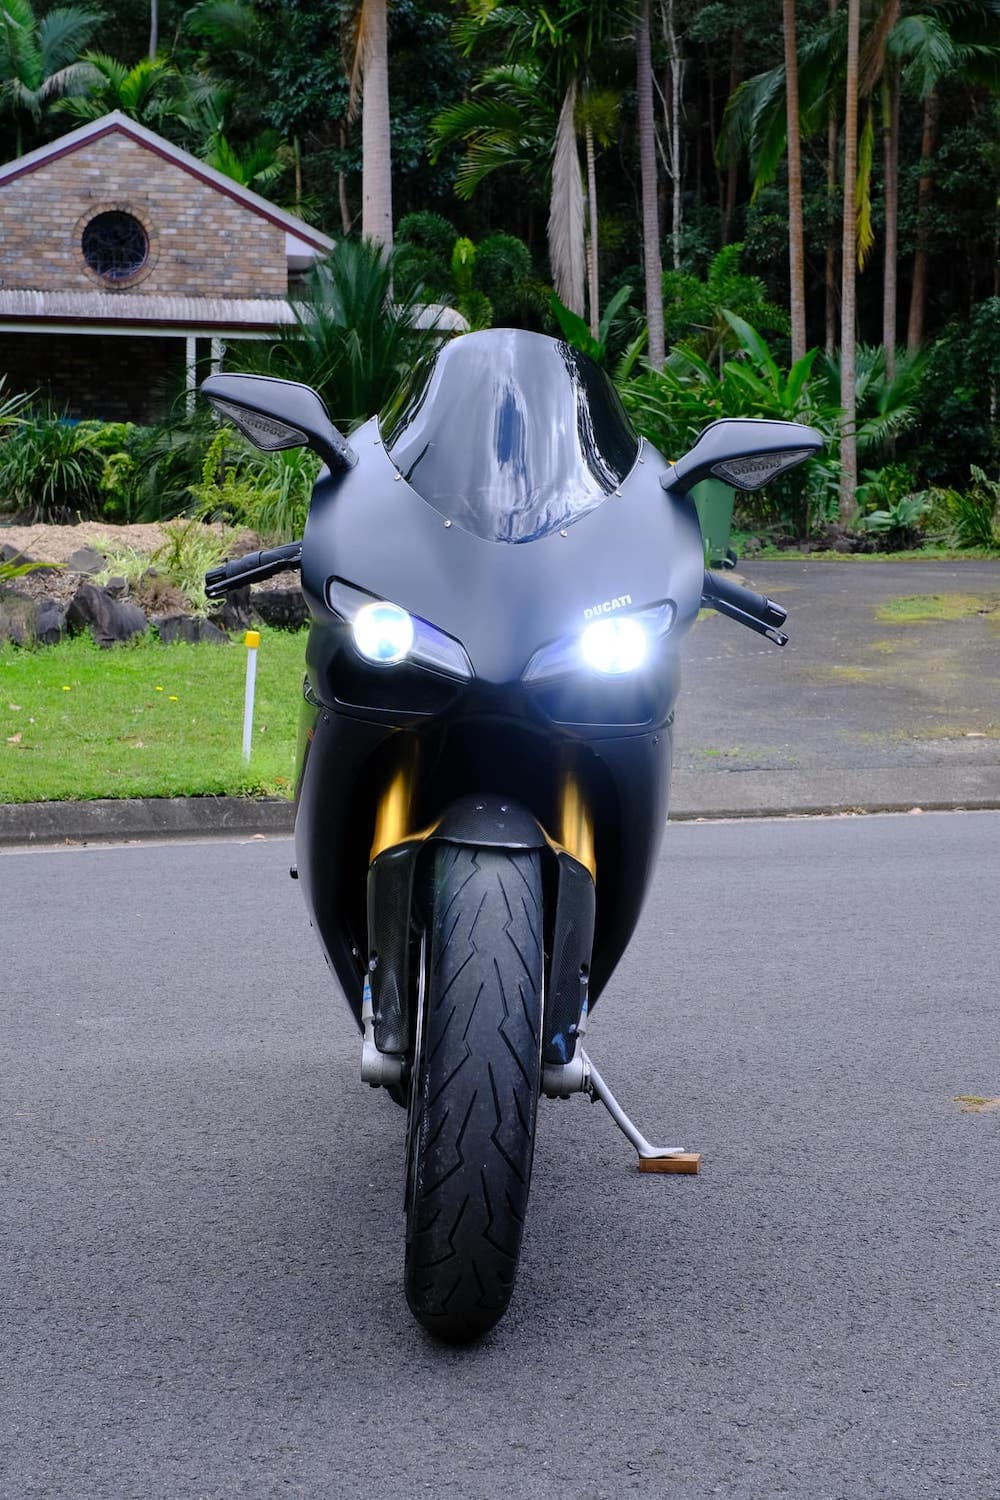 Front view of a Ducati 1098S with both low beam and high beam headlight on